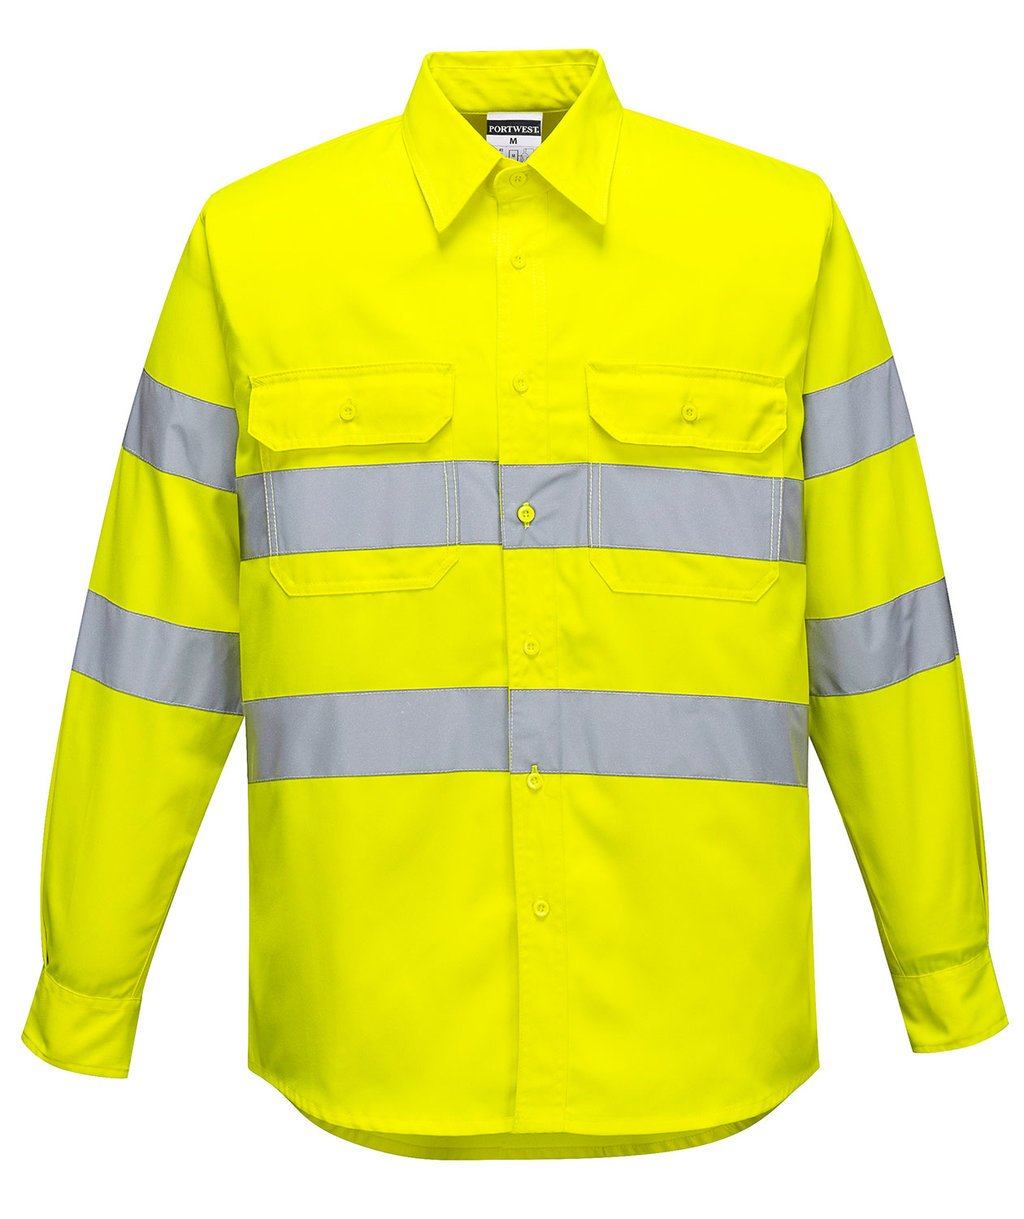 Portwest work shirt, Hi-Vis Yellow